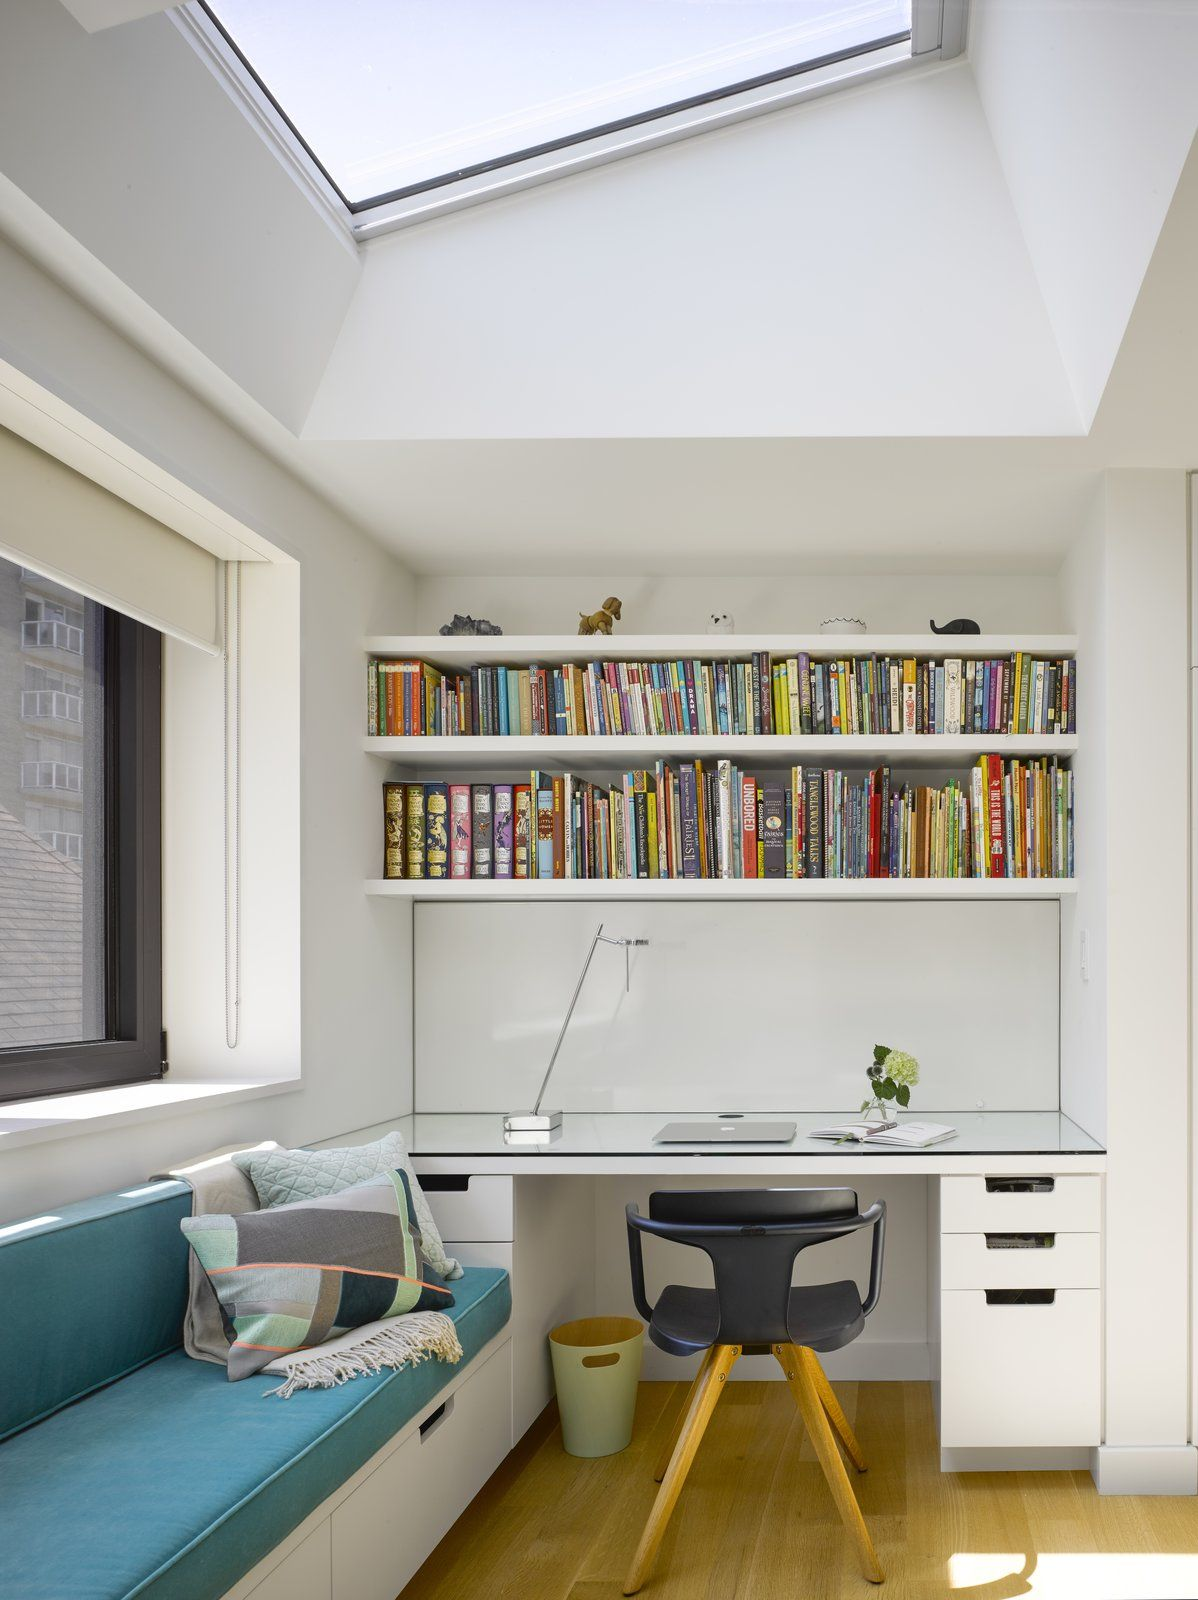 Elegant Study Room: An Elegant Edwardian Home Is Treated To A Thoughtful